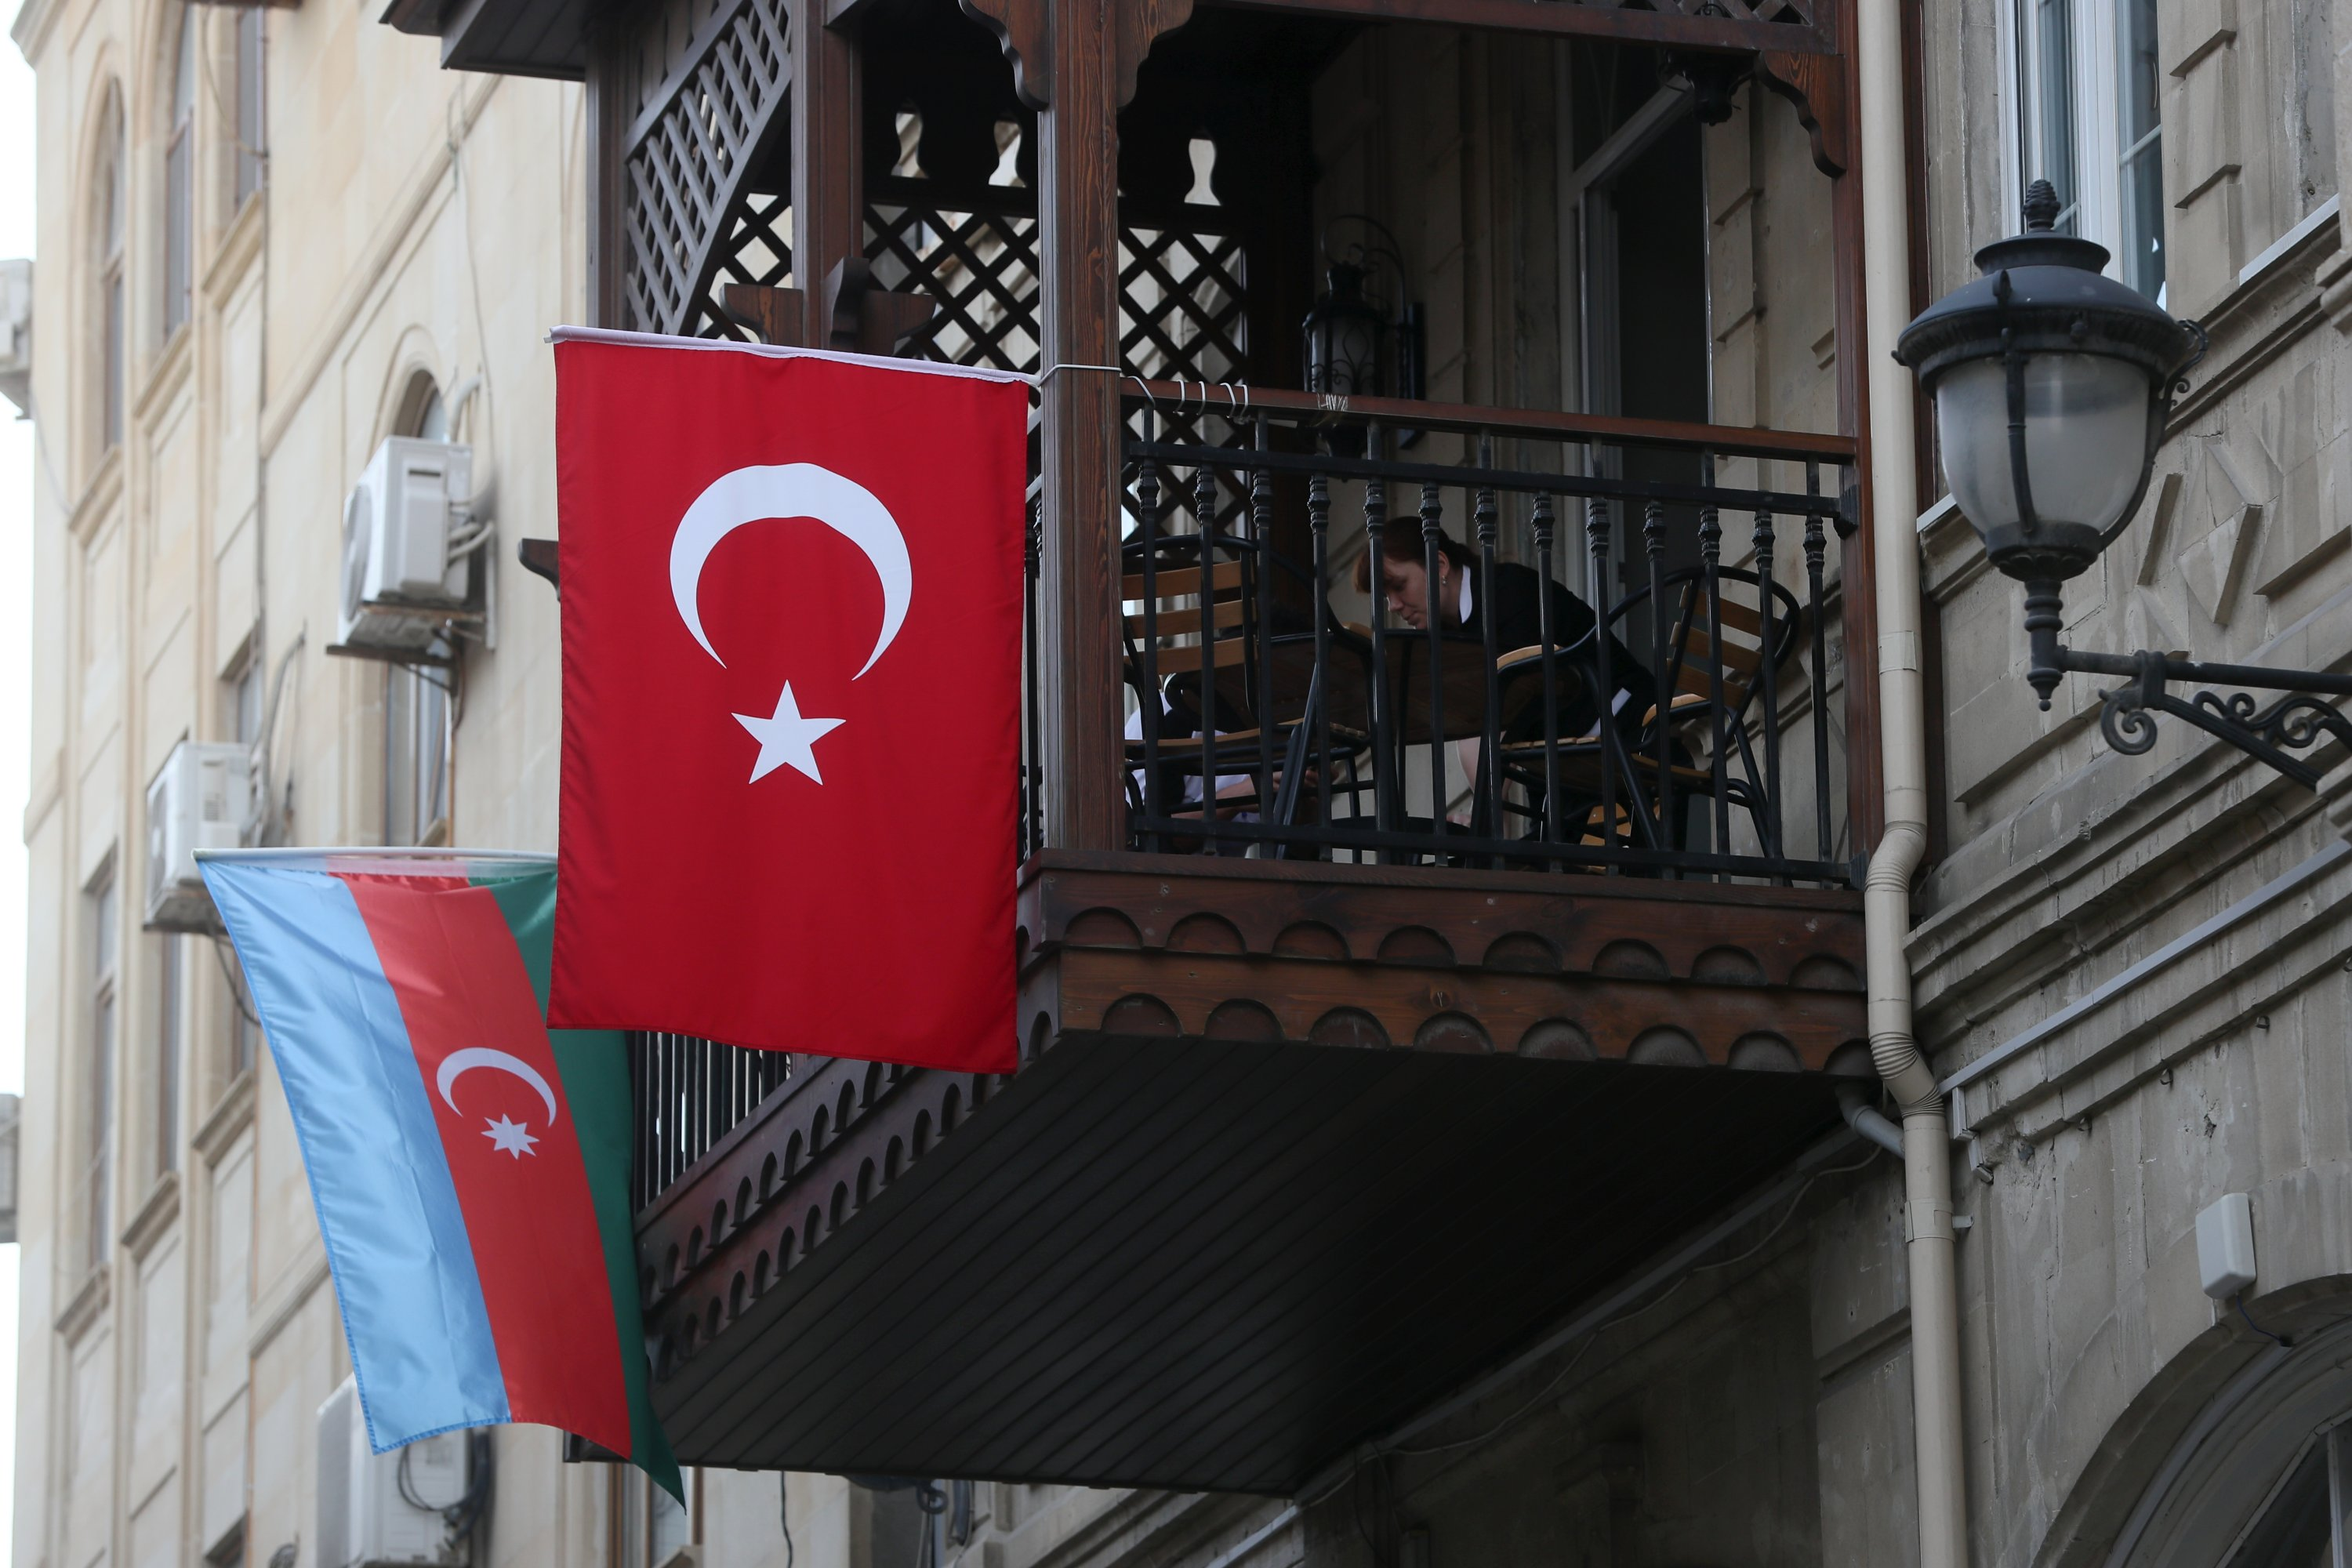 The national flags of Turkey and Azerbaijan hang from a balcony, Baku, Azerbaijan, Oct. 23, 2020. (Photo by Getty Images)